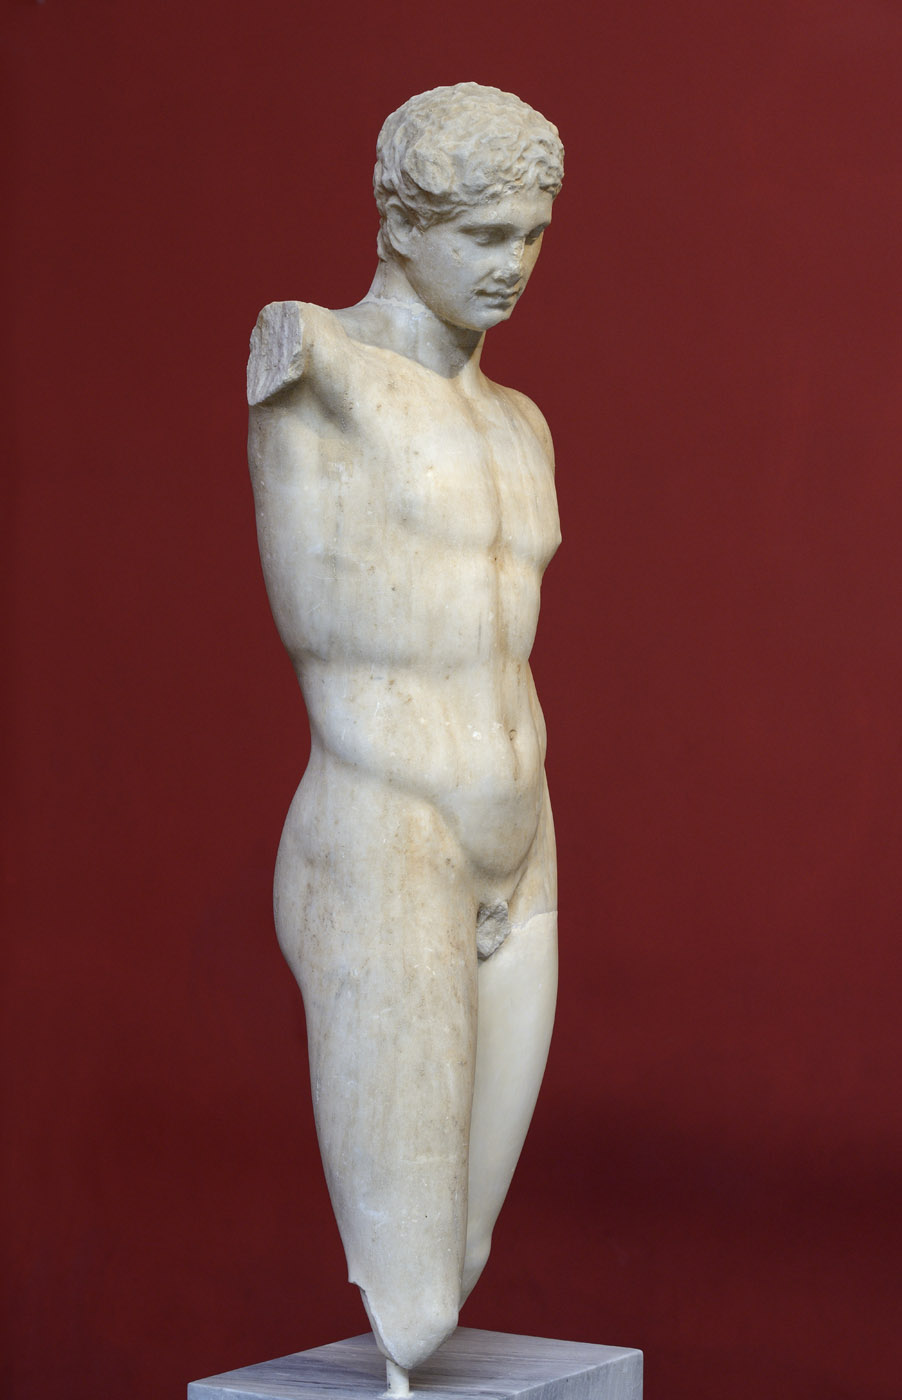 Statue of an athlete. Pentelic marble. Copy of the second half of 2nd cent. BCE after an original by Polycleitos made about 440 BCE. Inv. No. 254. Athens, National Archaeological Museum